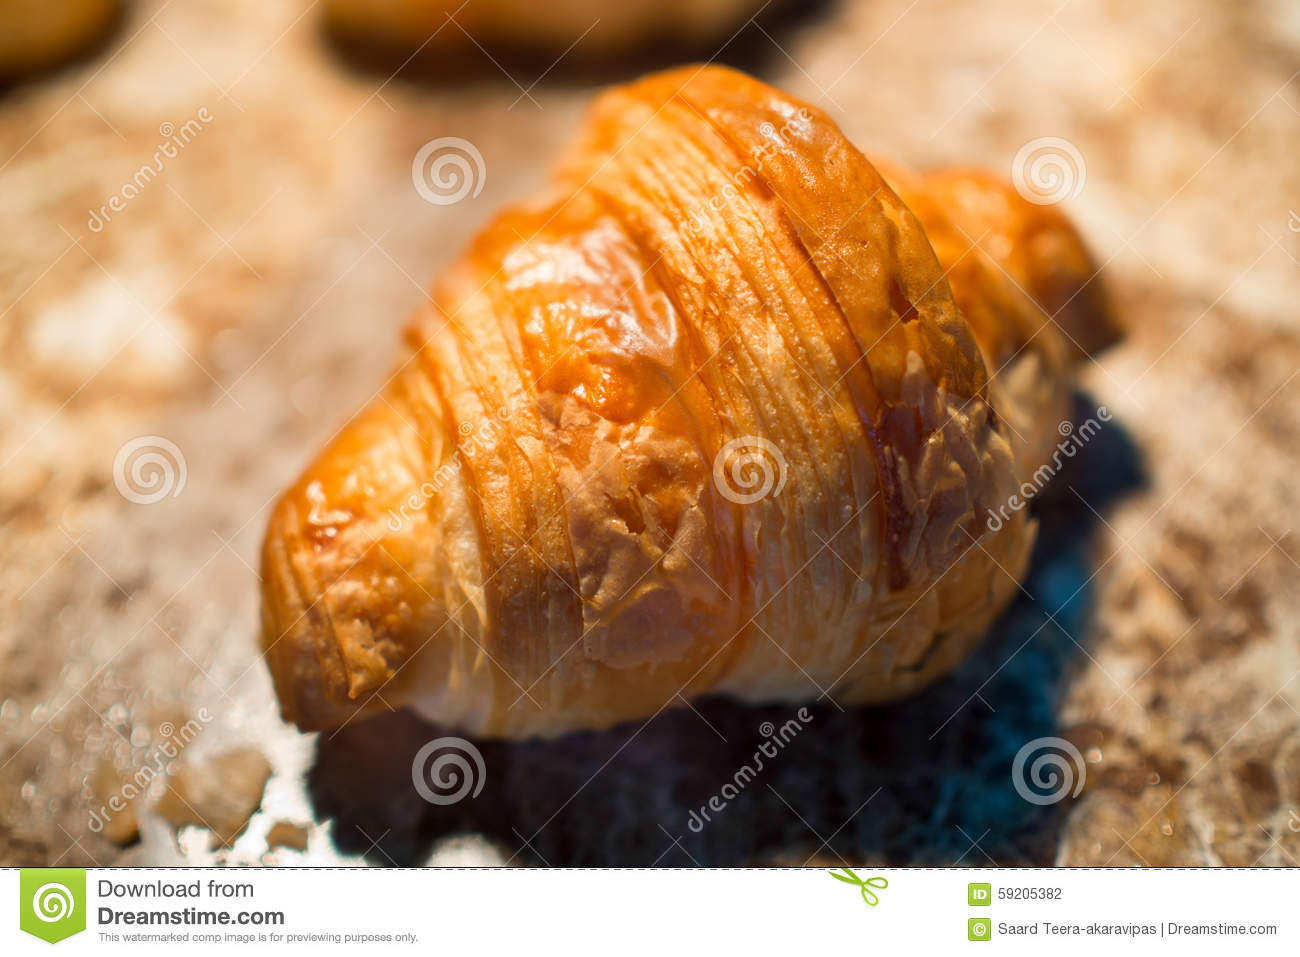 Croissant, bakery palatable in close-up